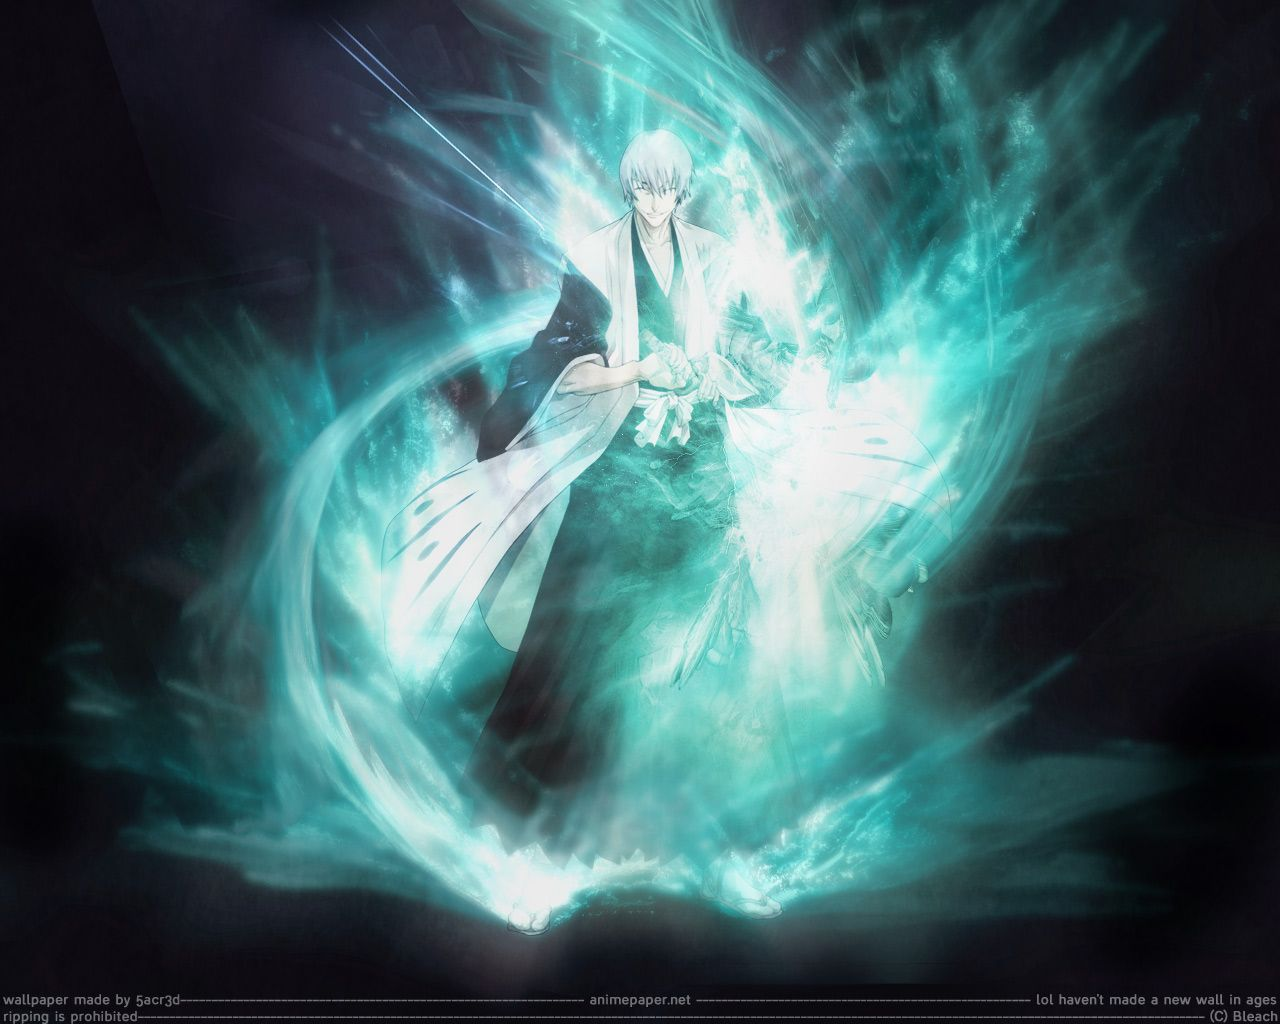 Anime Bleach Gin Ichimaru Wallpaper Anime Pinterest Bleach